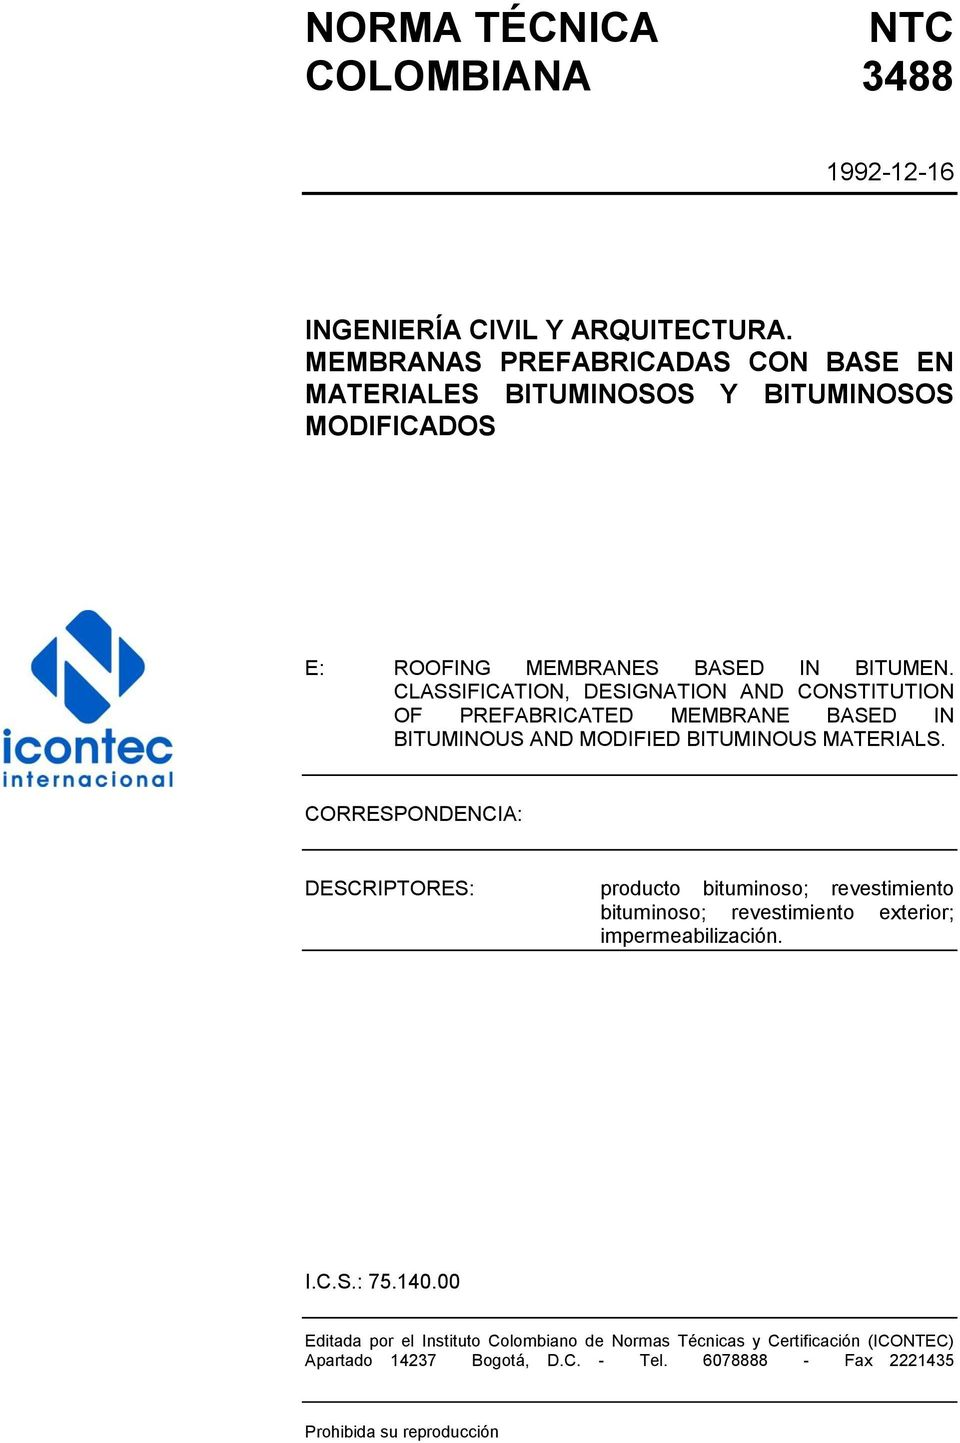 CLASSIFICATION, DESIGNATION AND CONSTITUTION OF PREFABRICATED MEMBRANE BASED IN BITUMINOUS AND MODIFIED BITUMINOUS MATERIALS.